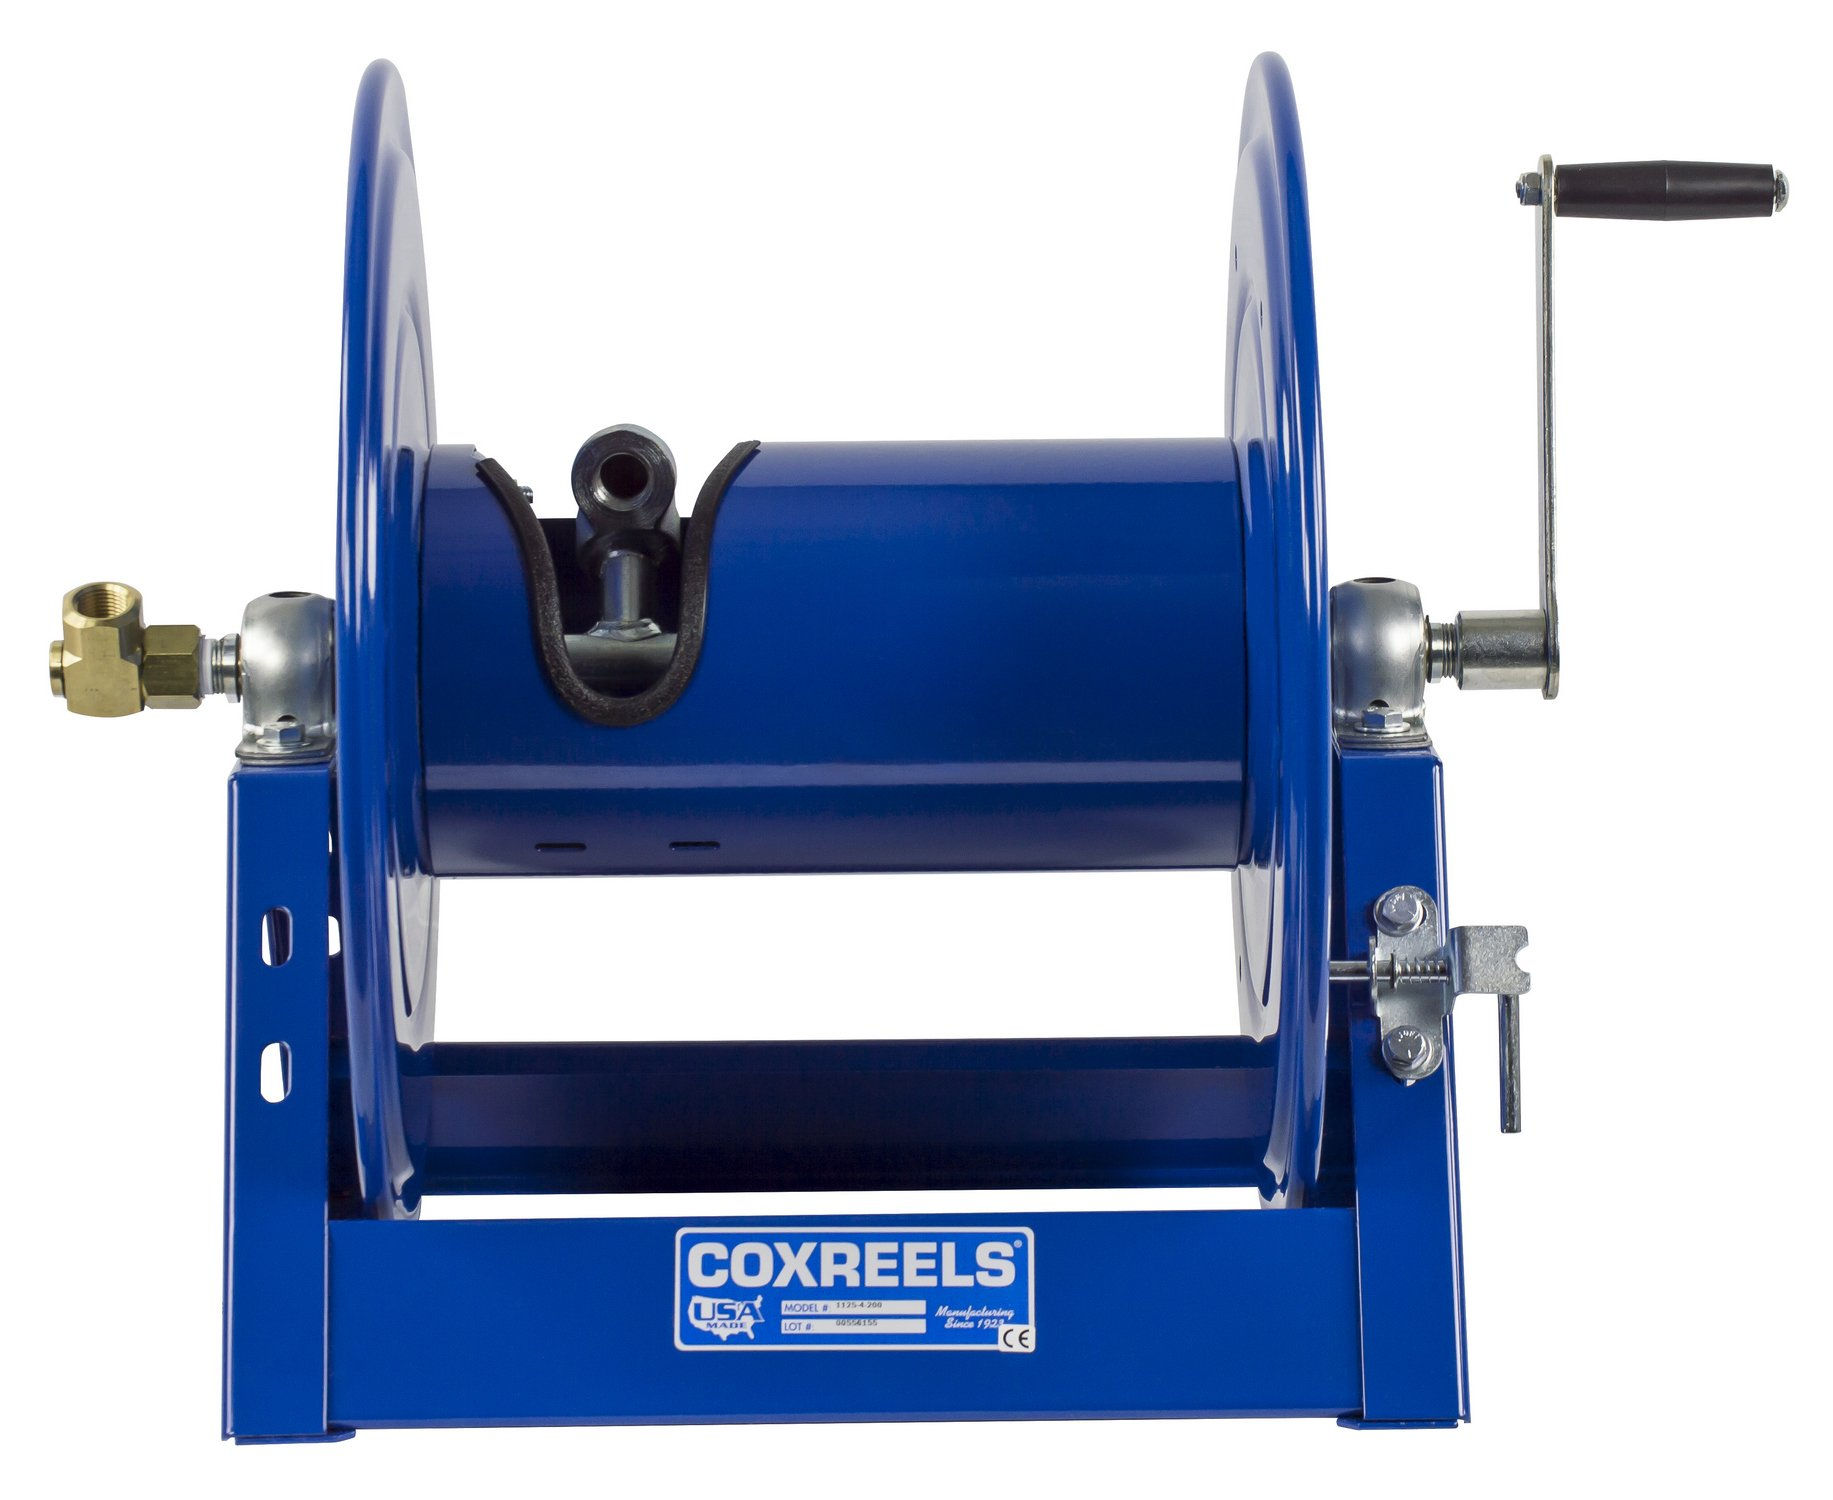 Coxreels 1125-4-100 Steel Hand Crank Hose Reel, 1/2'' Hose I.D., 100' Hose Capacity, 3,000 PSI, without Hose, Made in USA by Coxreels (Image #3)